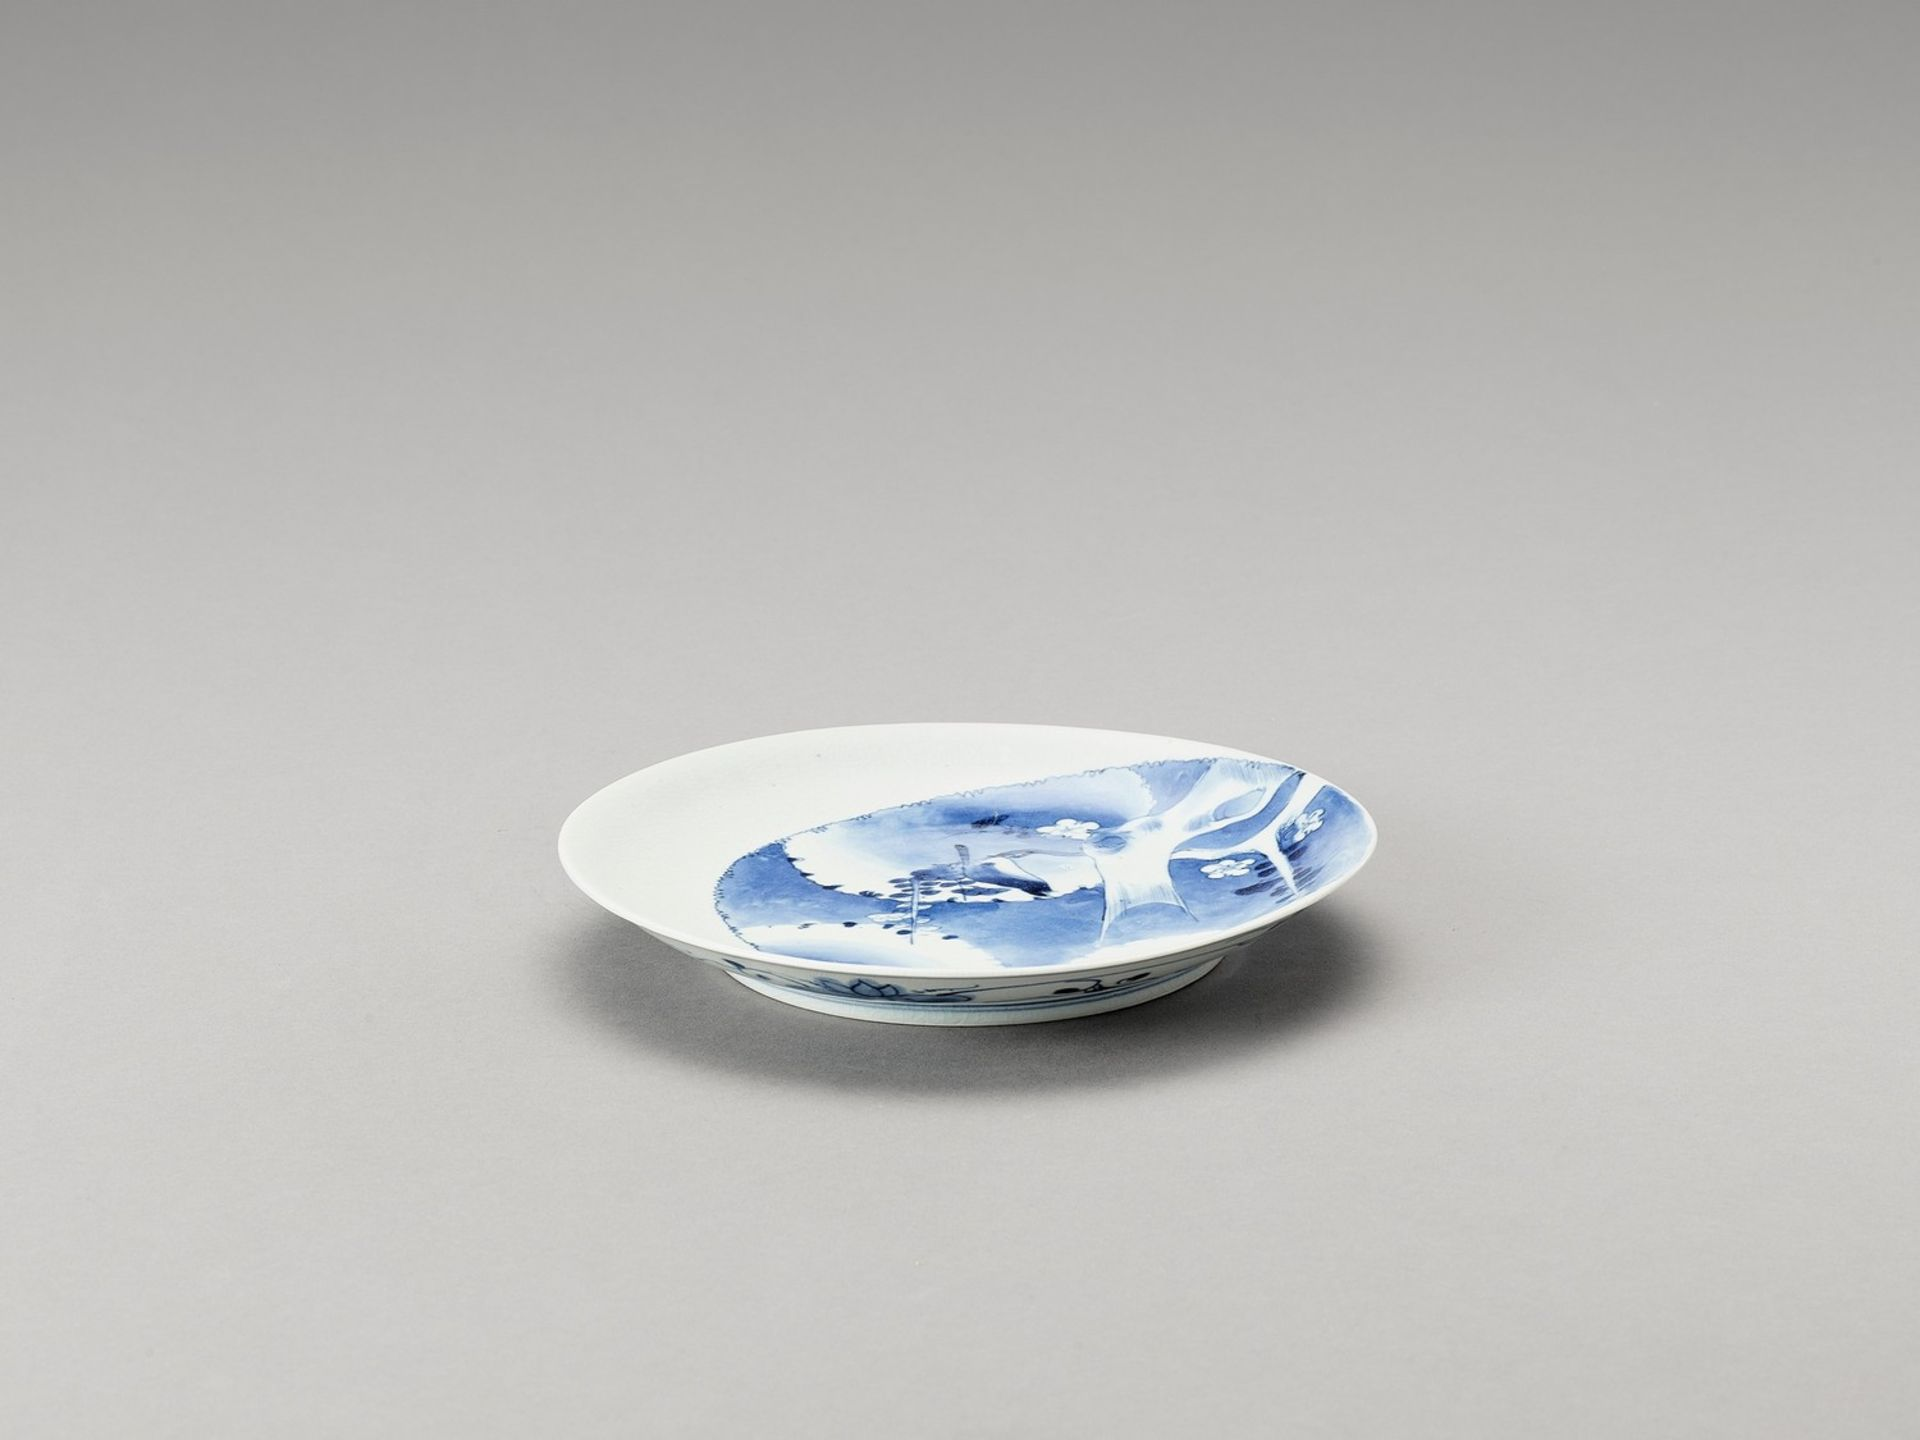 A BLUE AND WHITE PORCELAIN DISH - Image 4 of 4